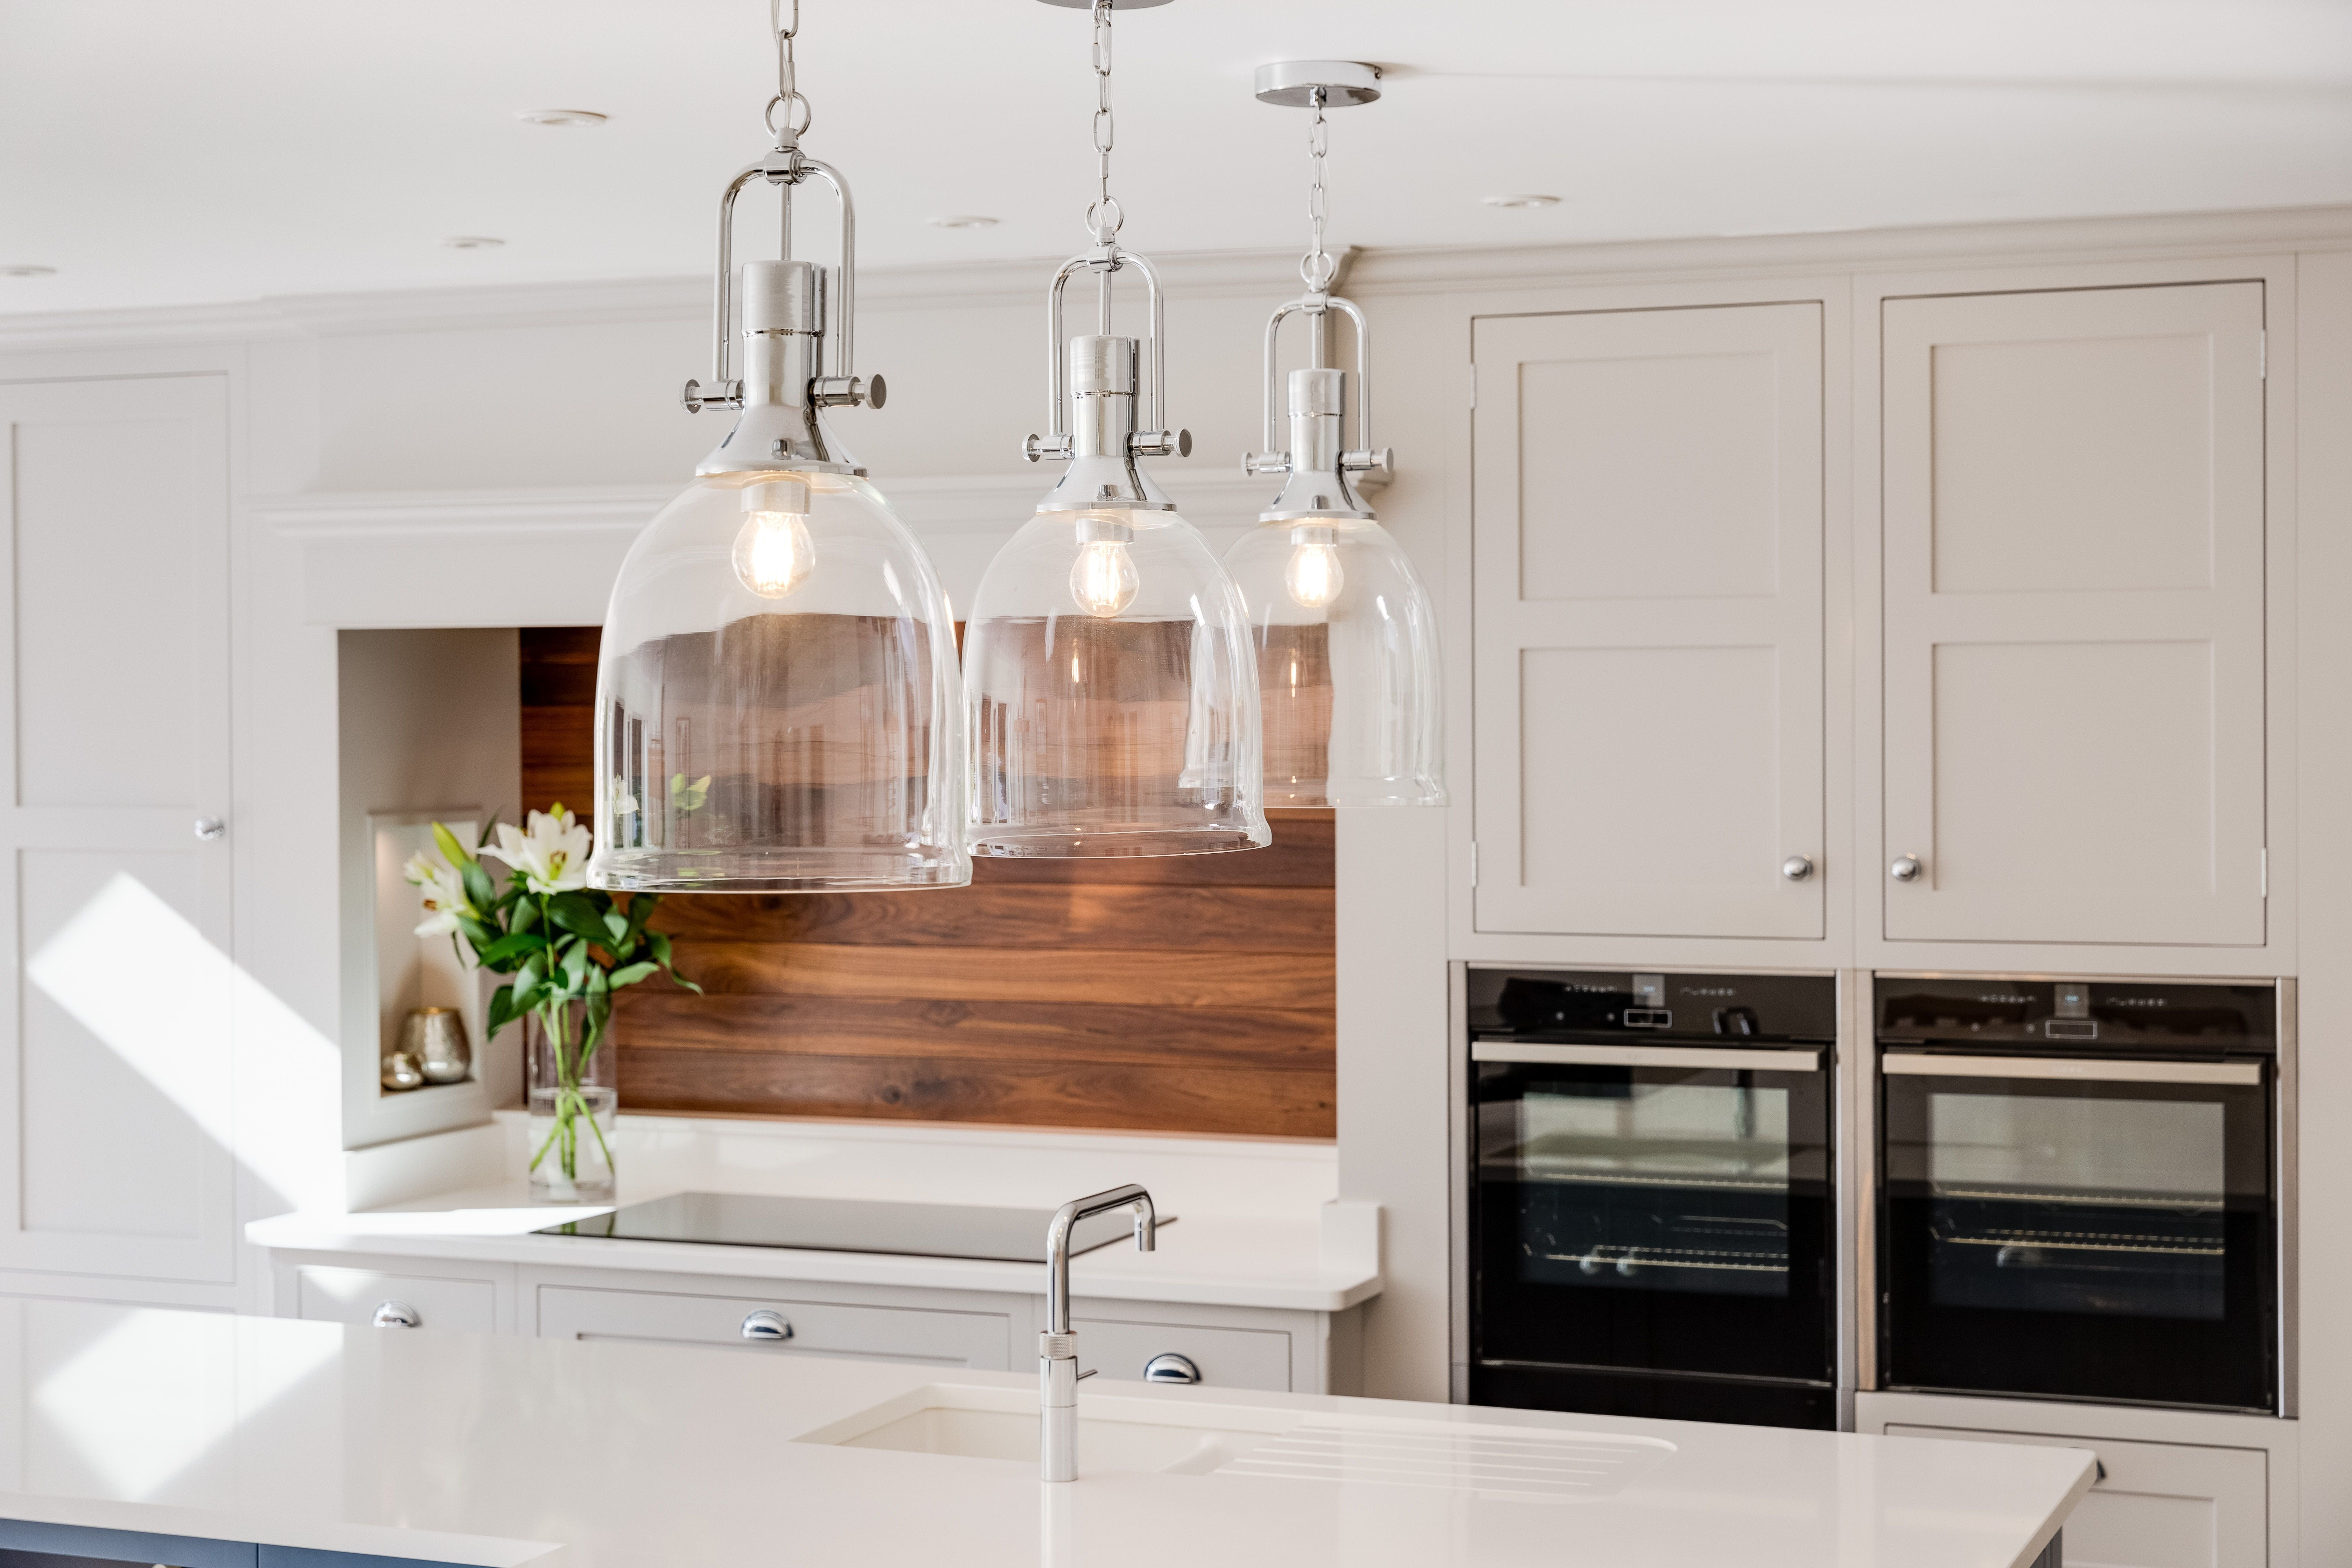 The Kitchen From A Create Perfect Interior Design Project In